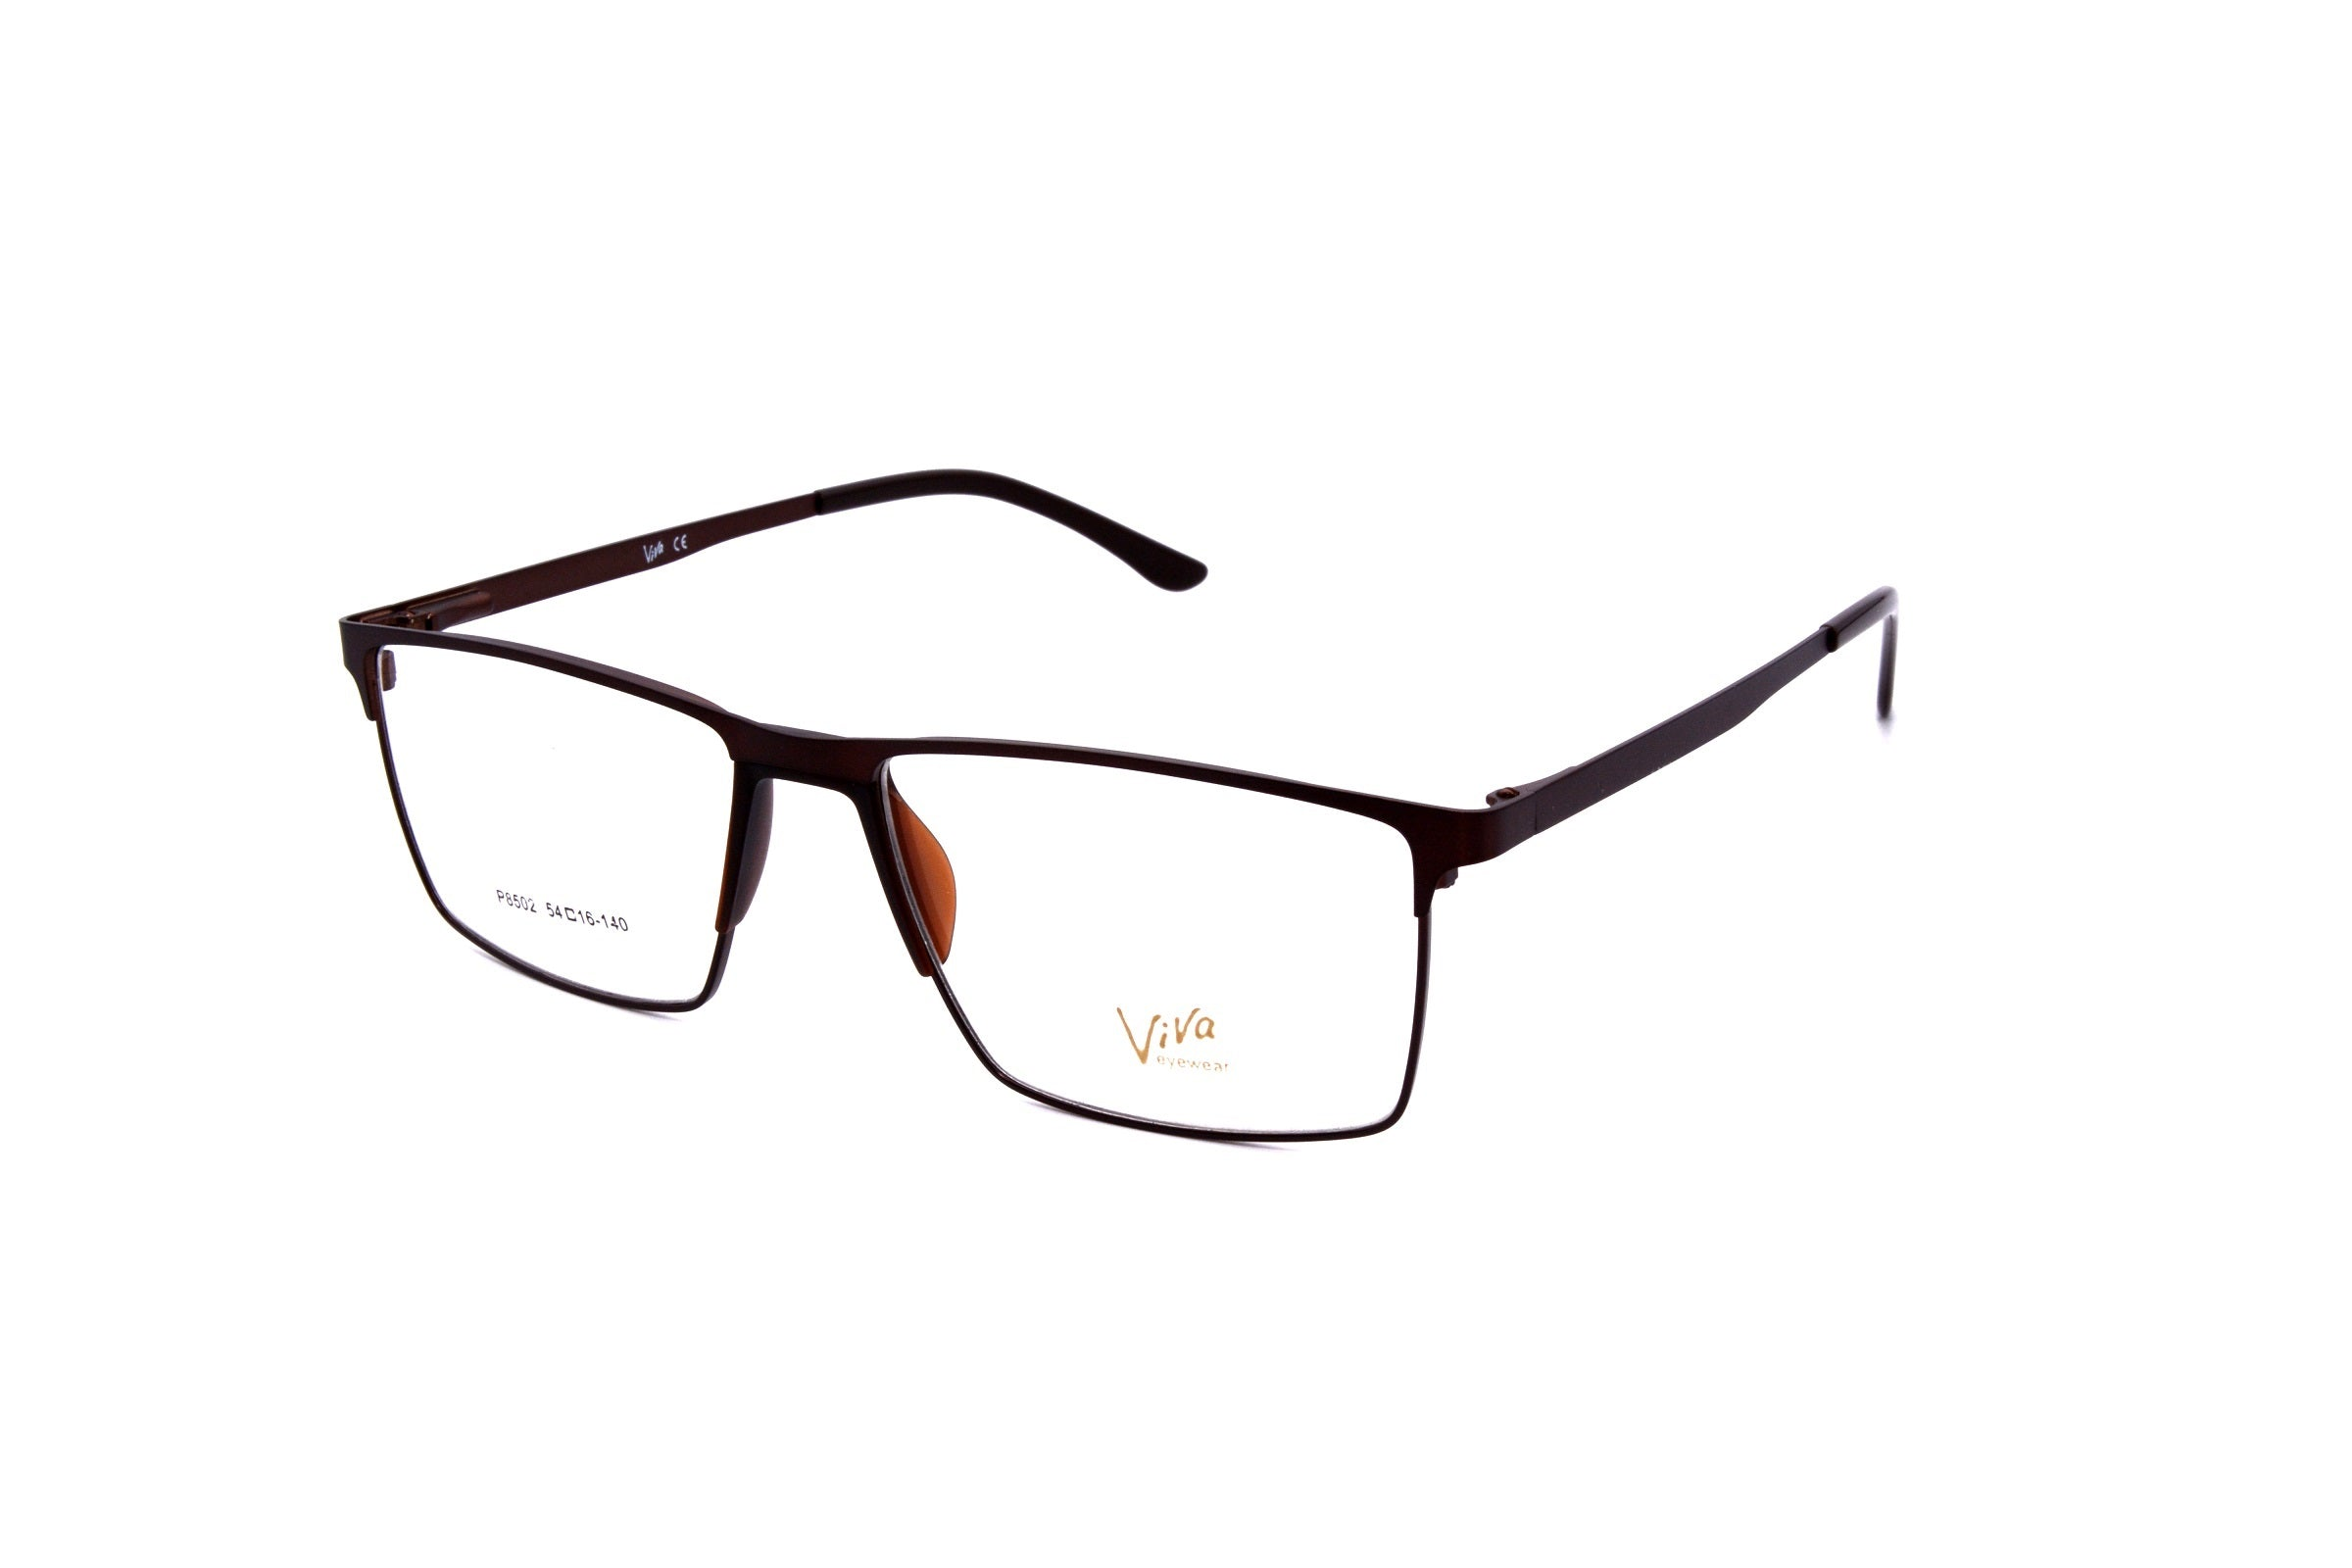 Viva eyewear 8500, M3 - Optics Trading